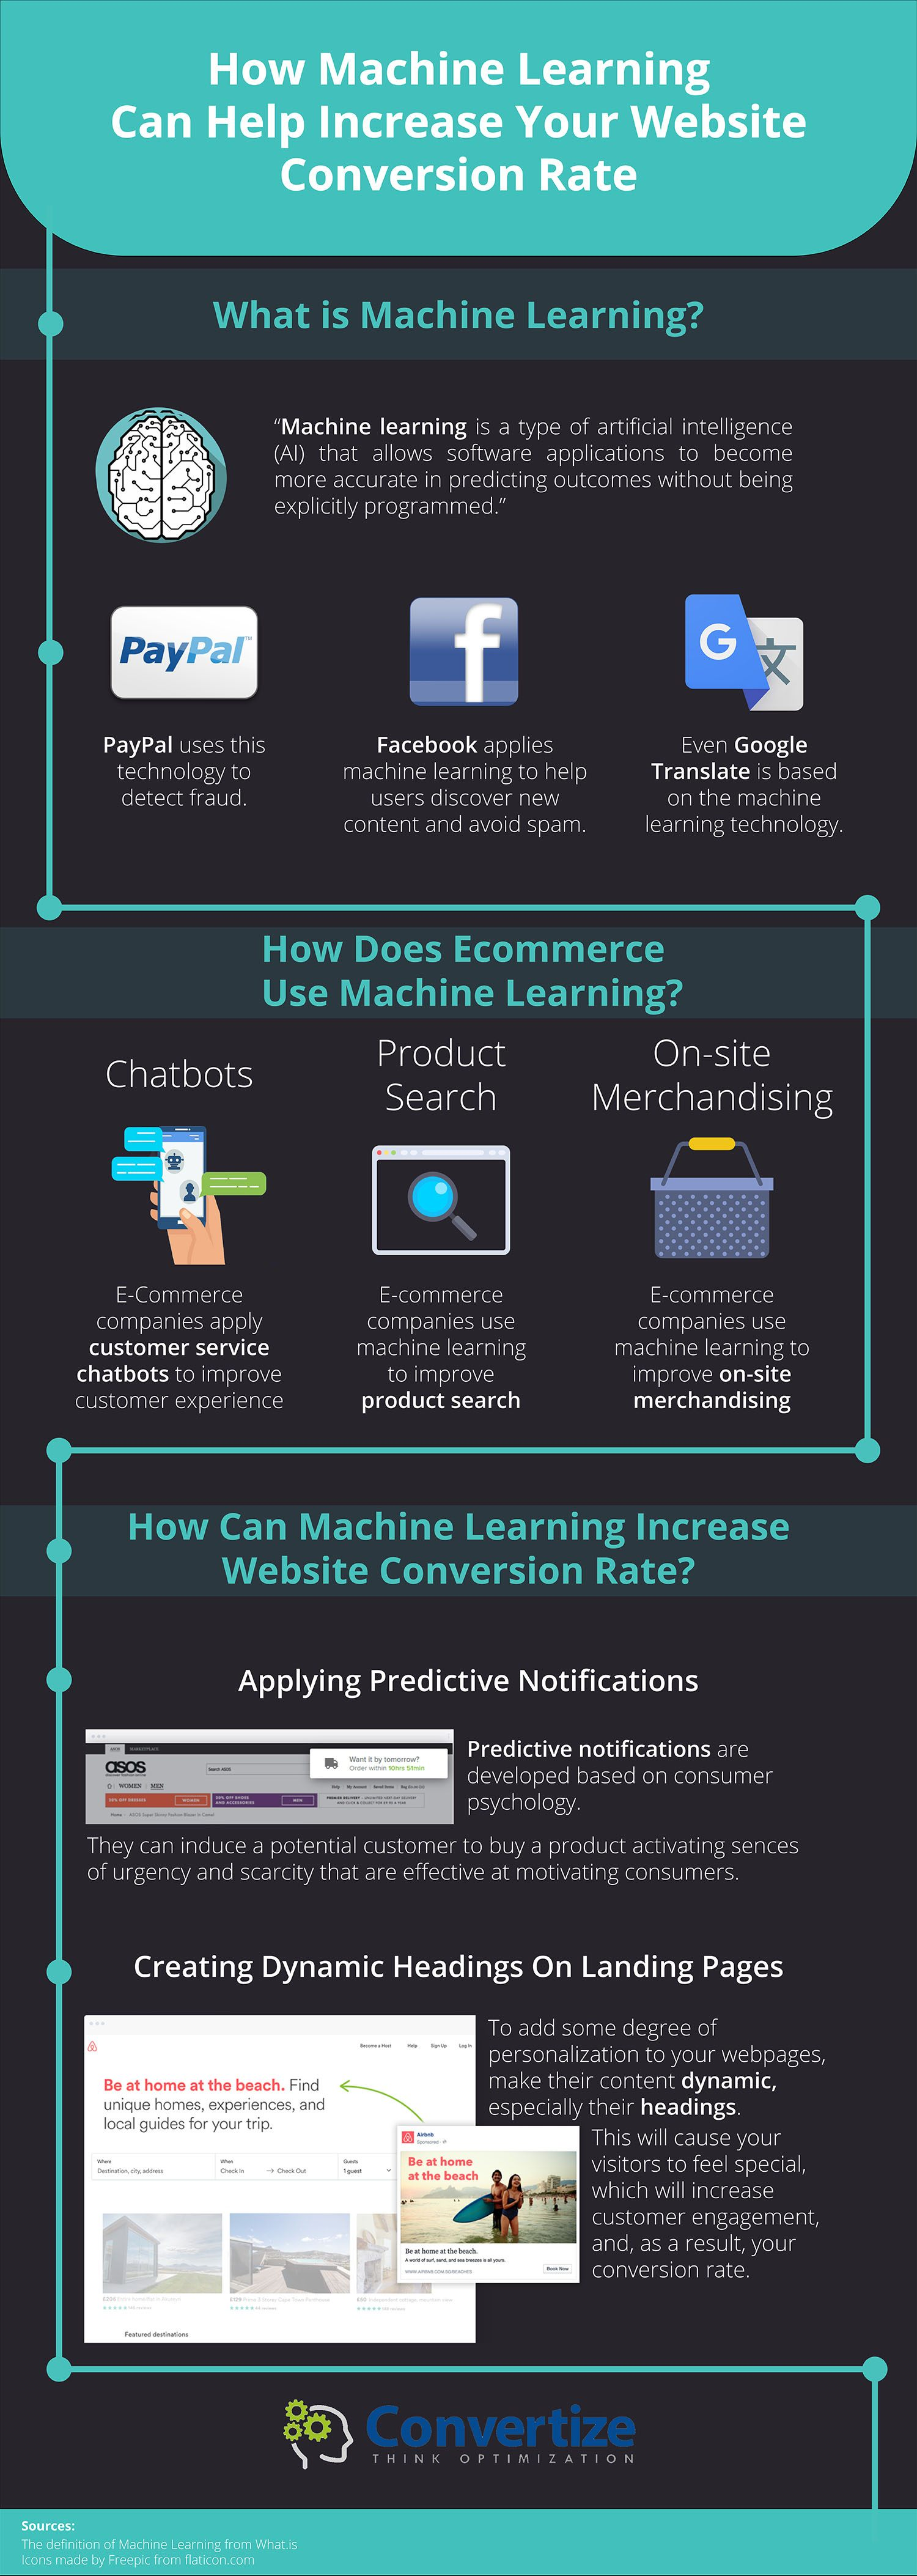 How Machine Learning Can Help Increase Ecommerce ... - photo#3